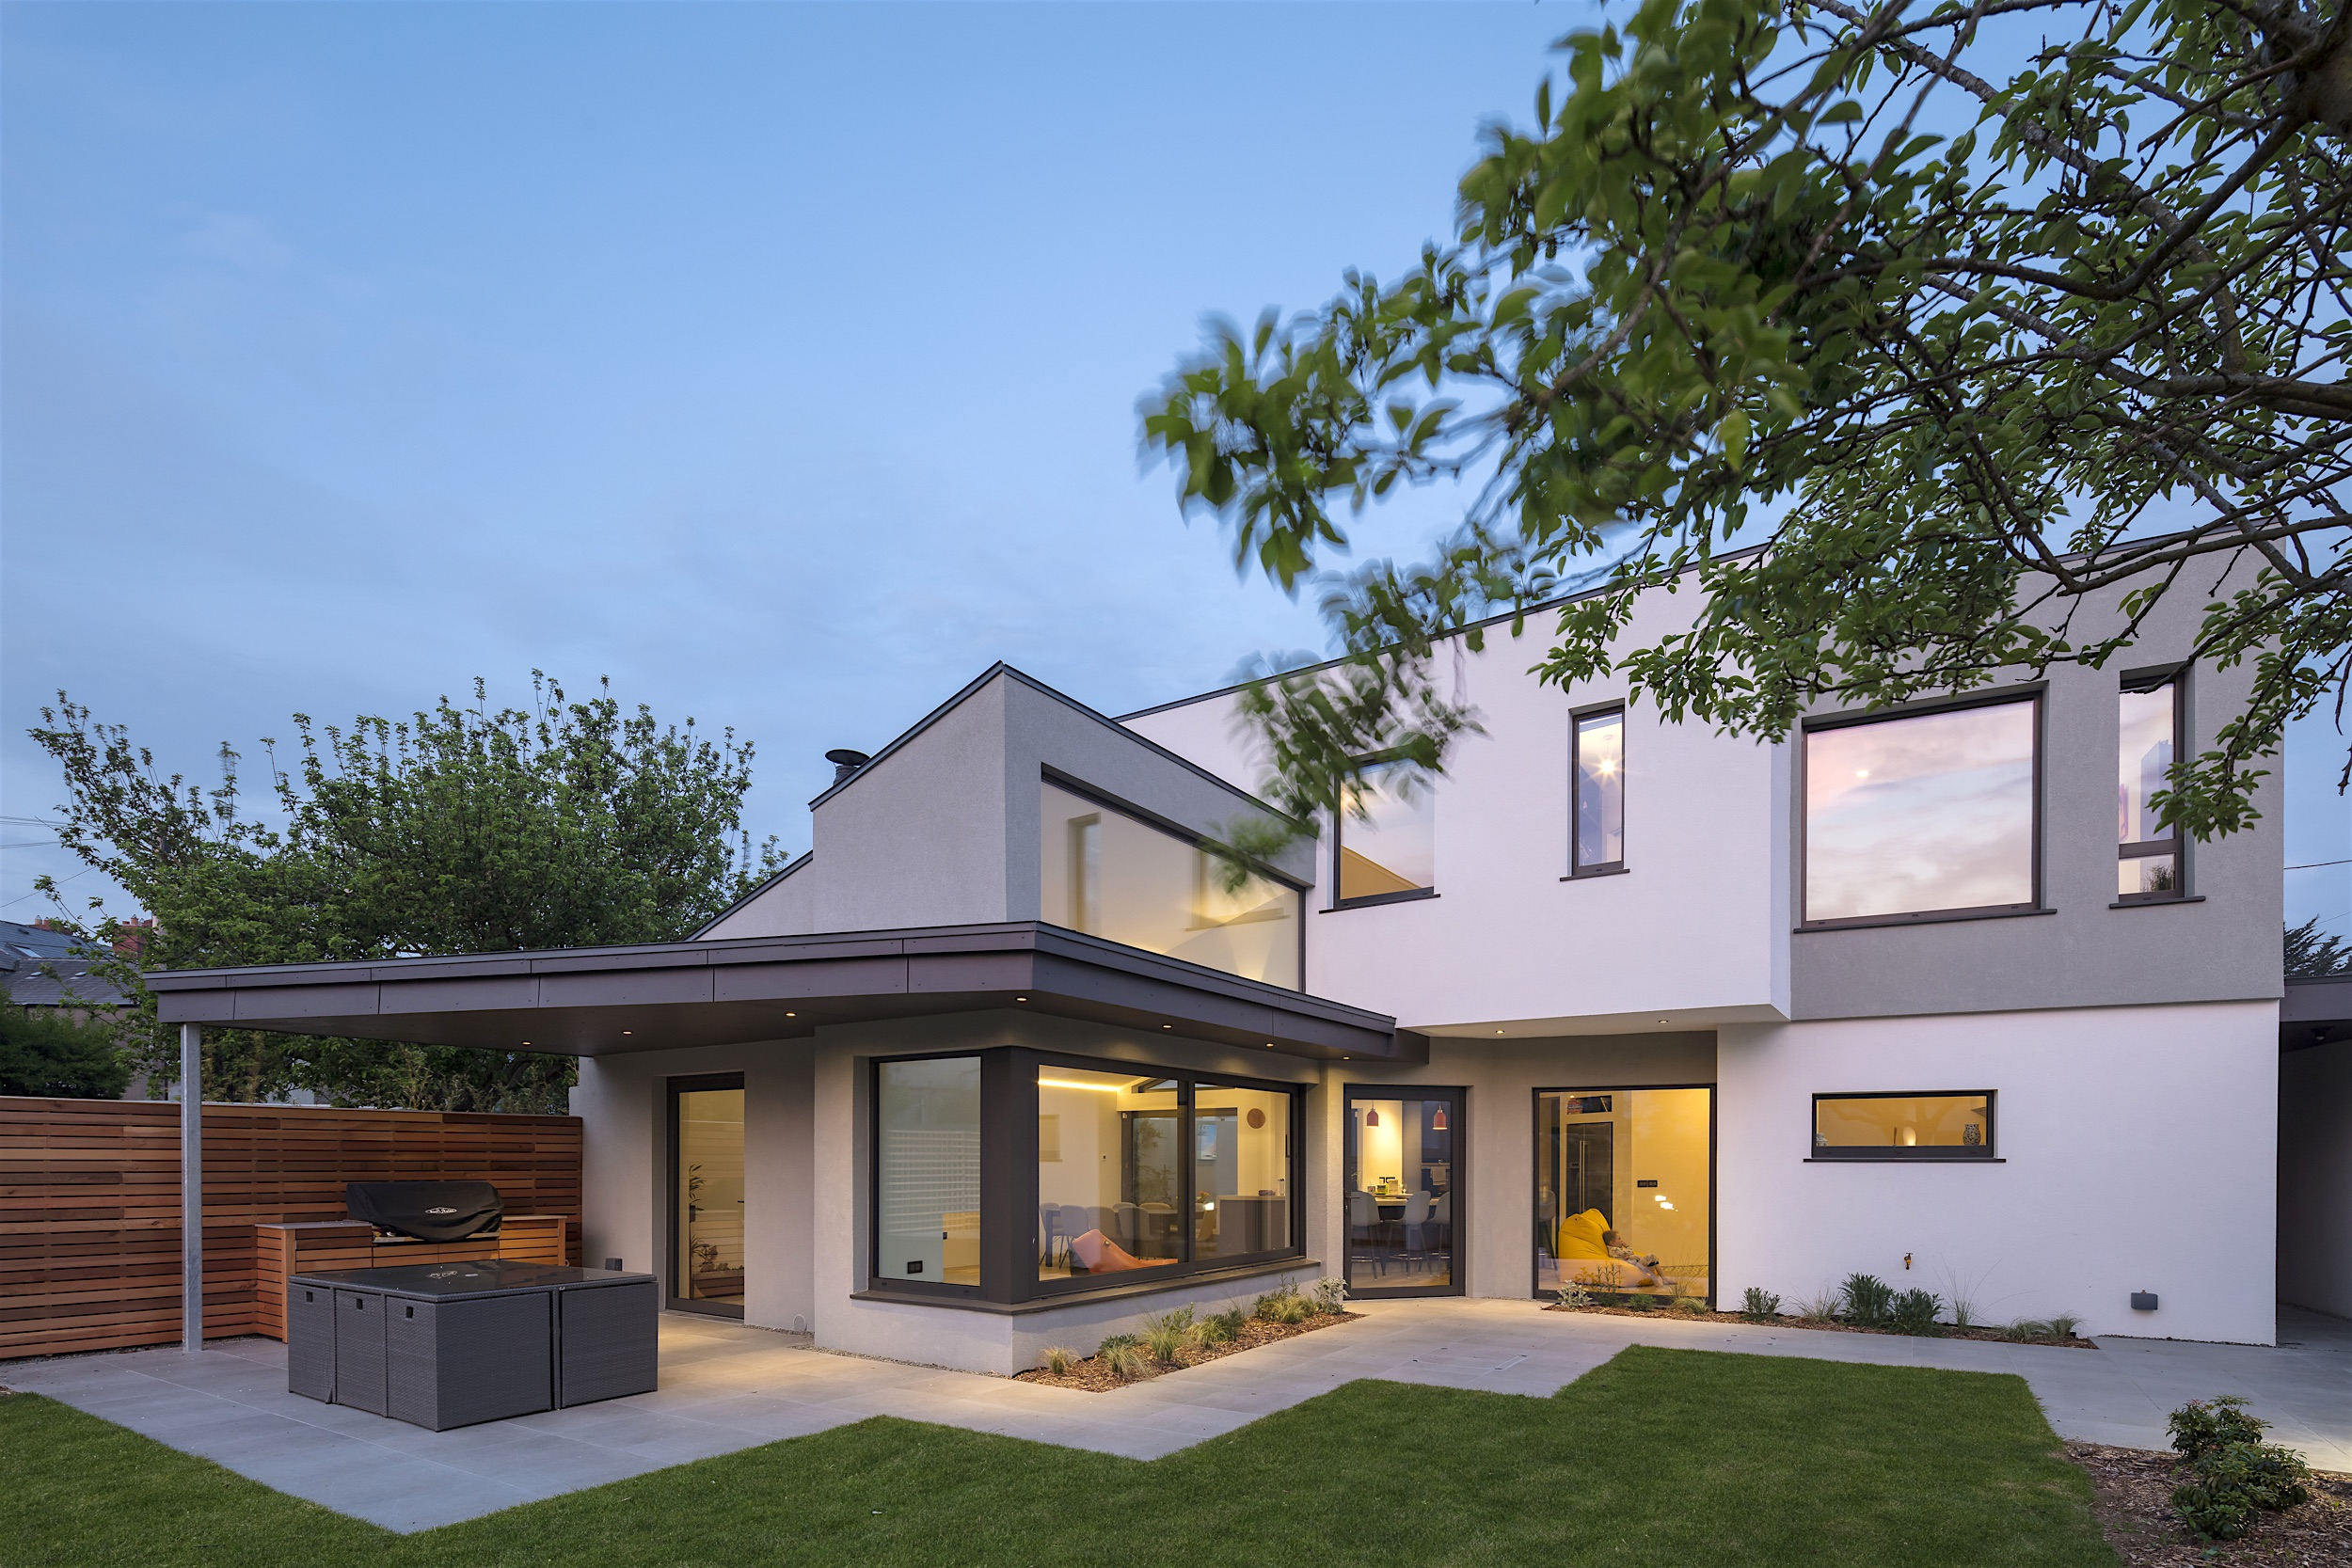 BRENNAN_FURLONG_RENOVATION_EXTENSION_HOMEFARM_PARK_DRUMCONDRA (7).jpg